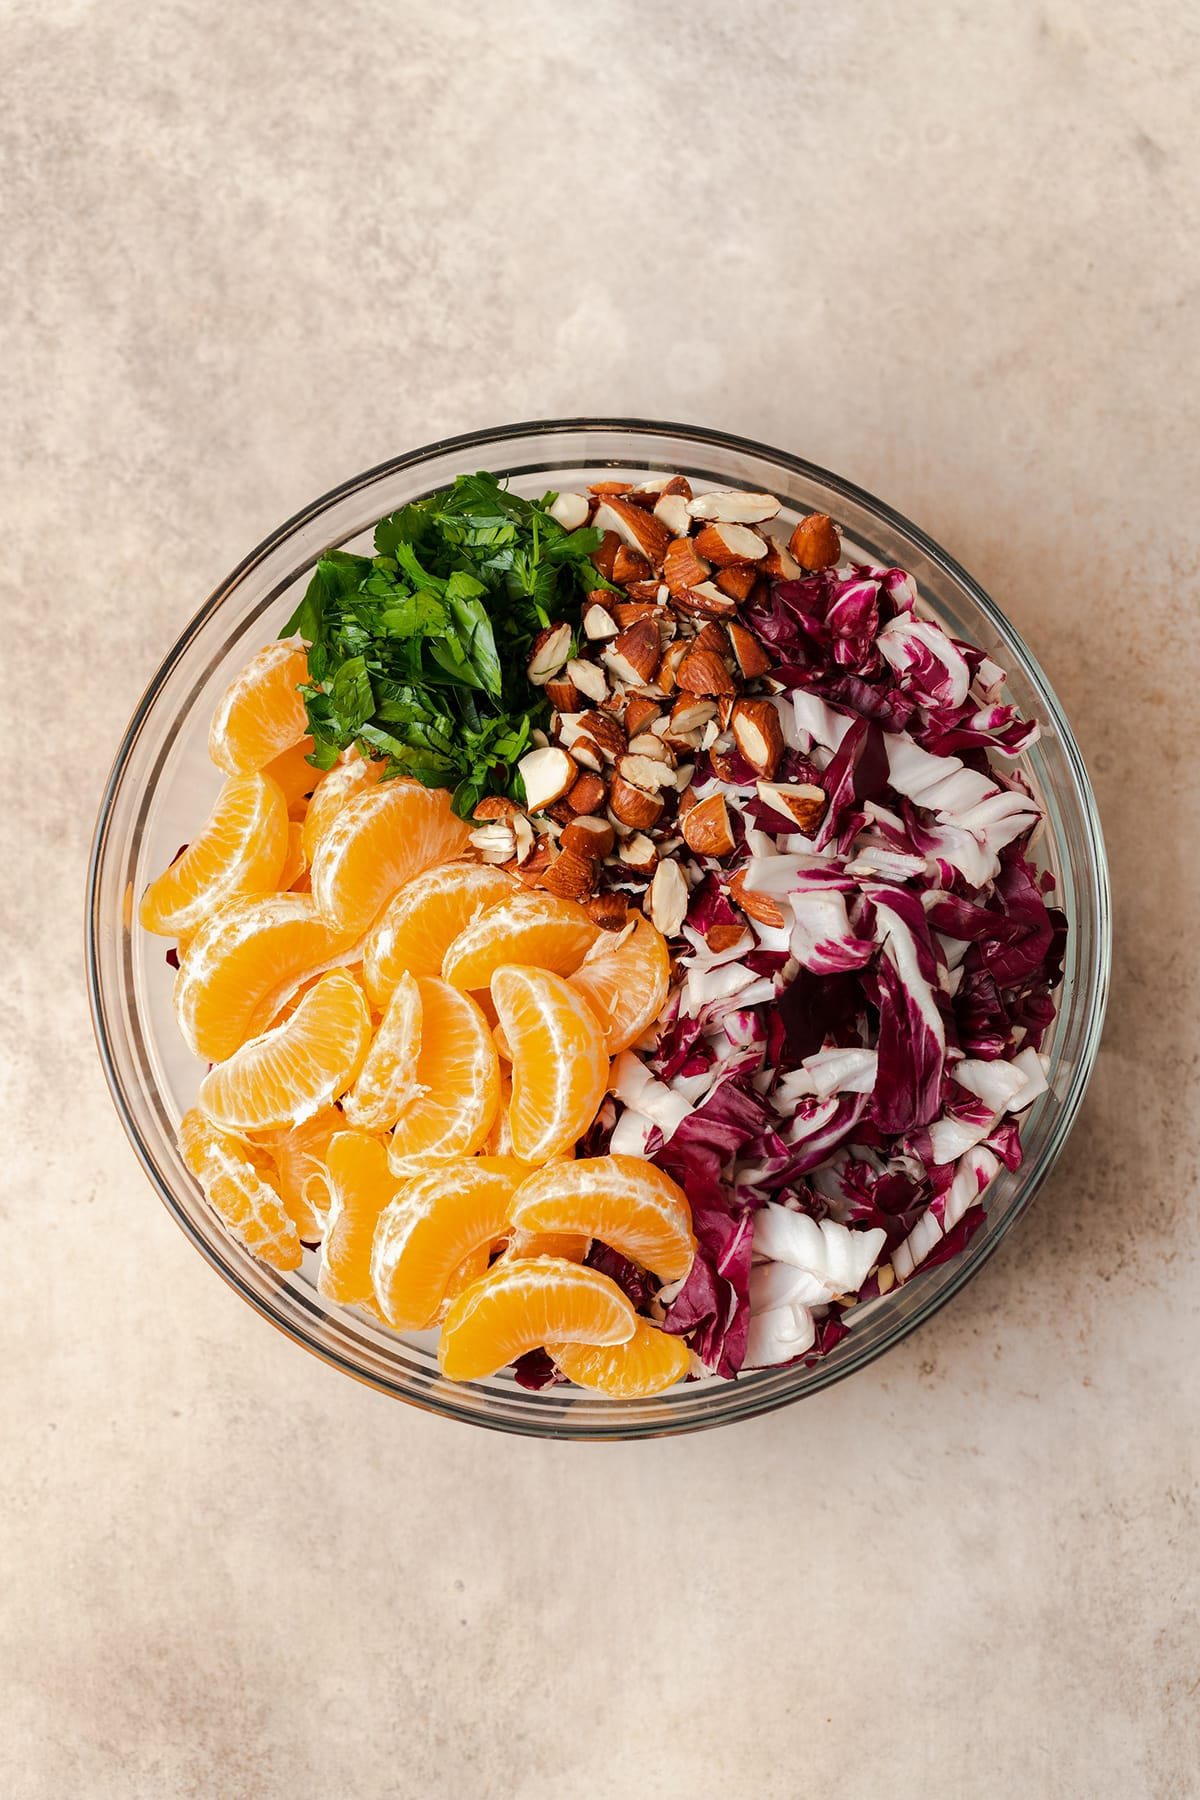 All ingredients for the clementine salad laid out in a glass bowl. There is chopped radicchio, chopped almonds, chopped parsley, and clementine pieces.